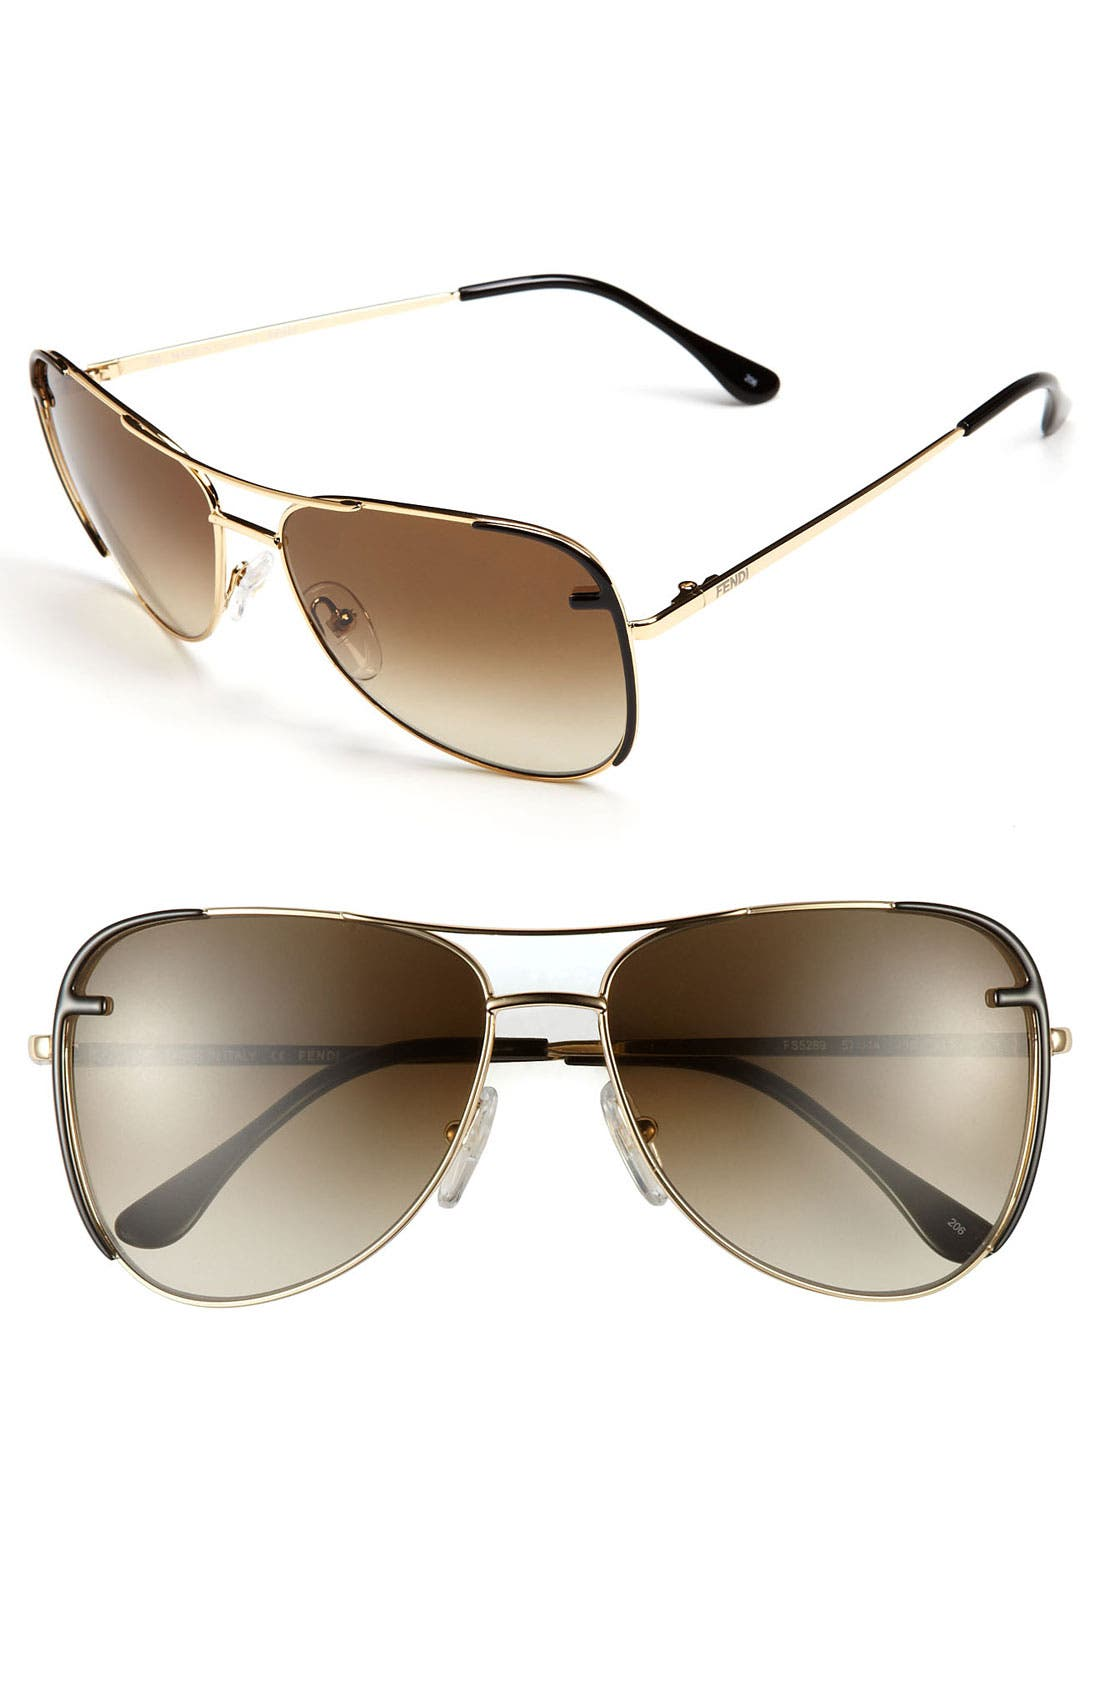 Main Image - Fendi 57mm Metal Aviator Sunglasses